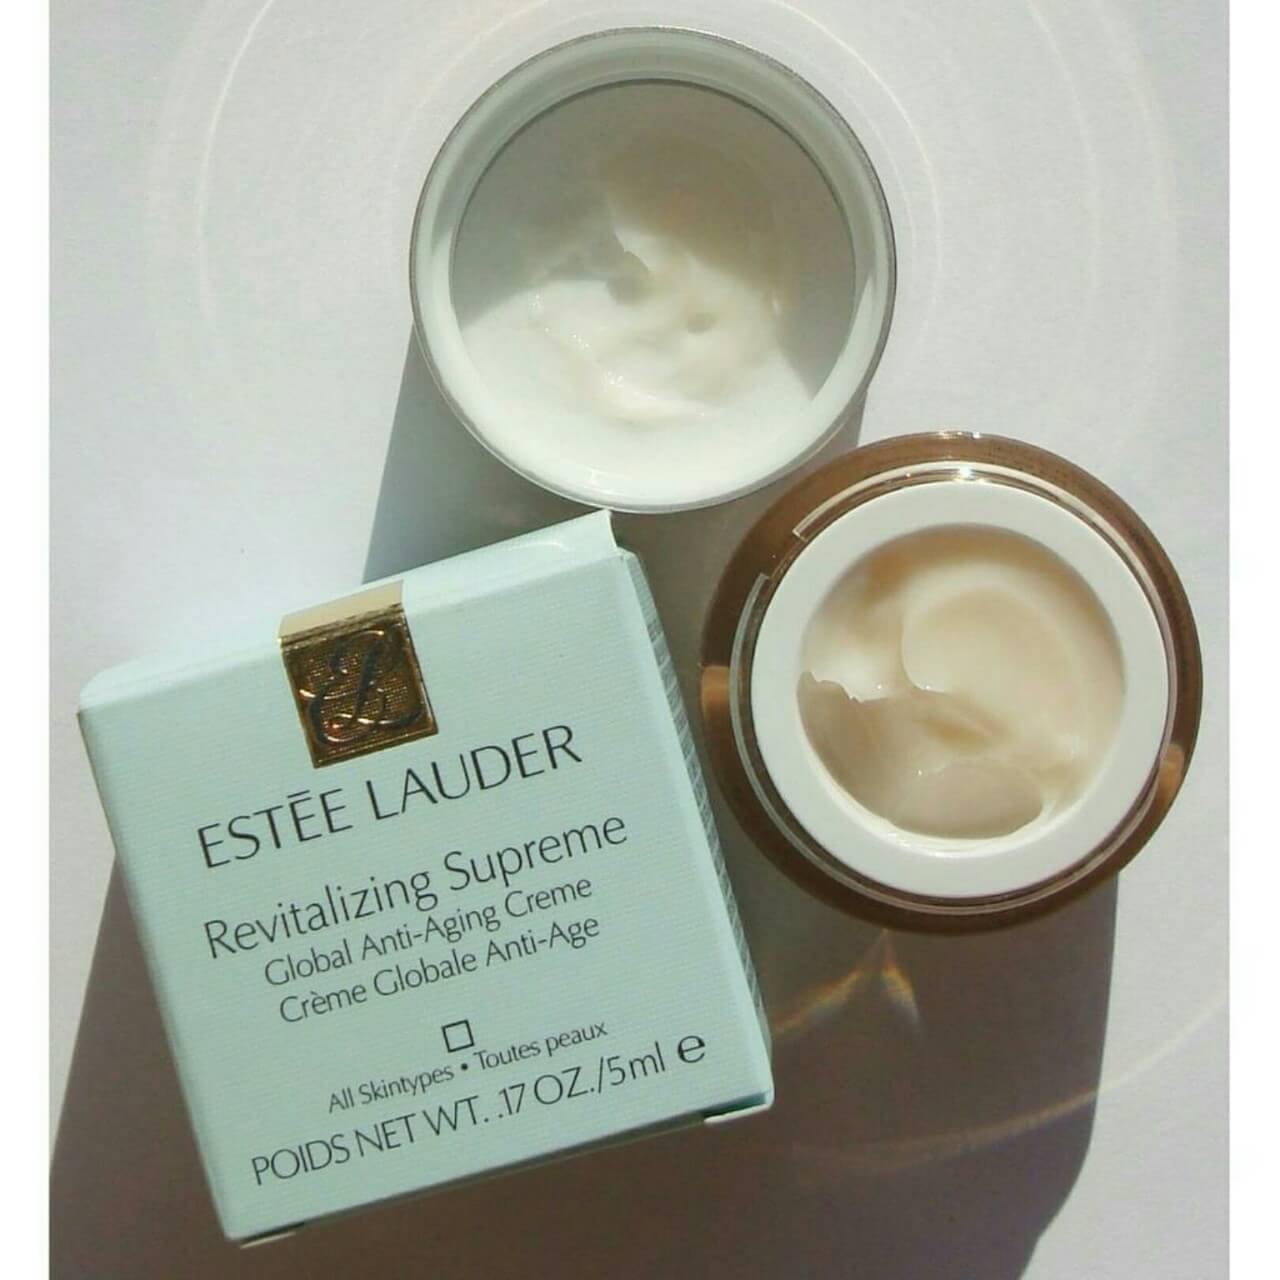 Estee Lauder Revitalizing Supreme Global Anti-Aging Creme 5ml.